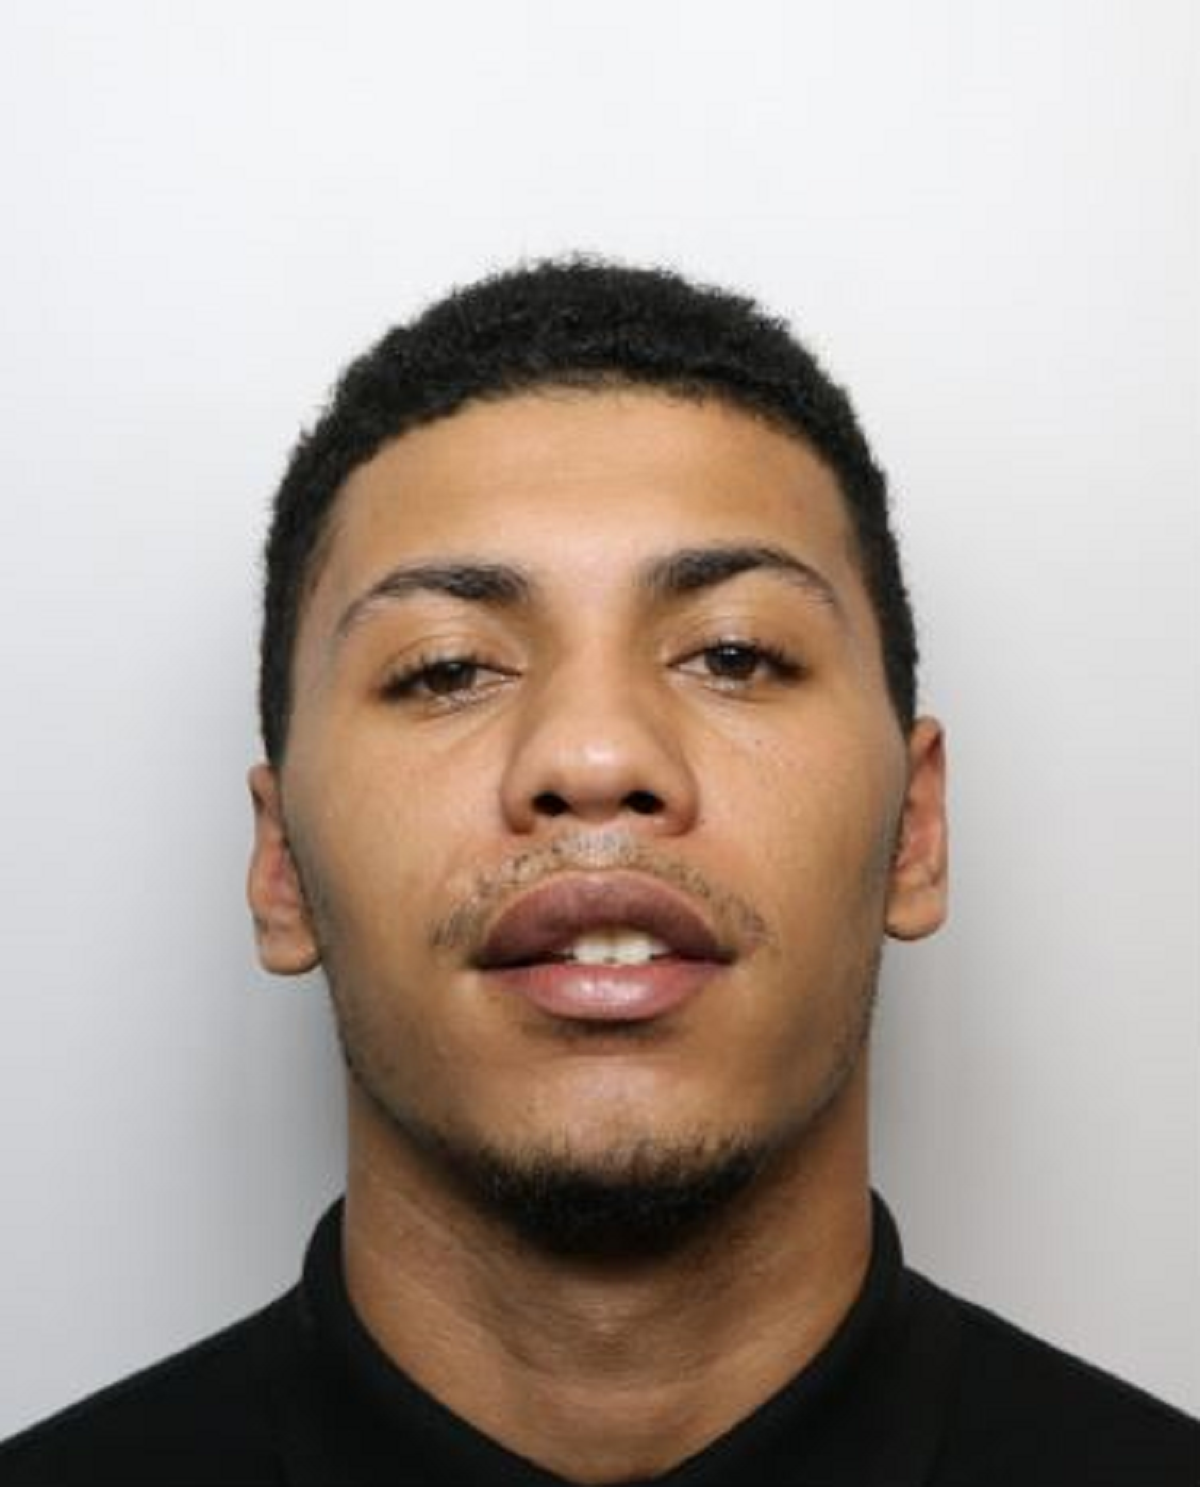 Michael Craggs is wanted for recall to prison